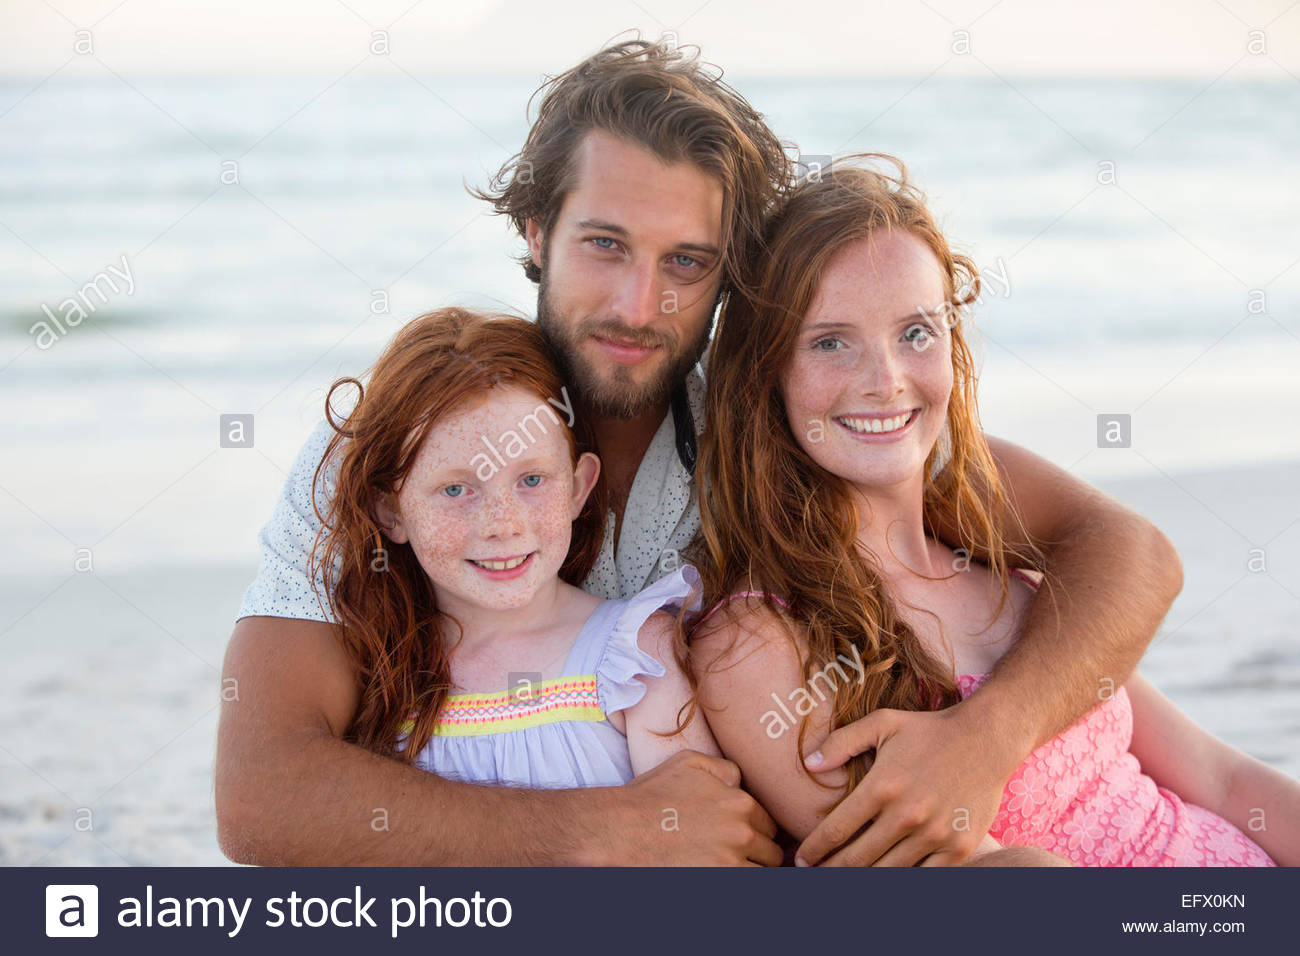 Portrait of family, smiling at camera, embracing on sunny beach - Stock Image